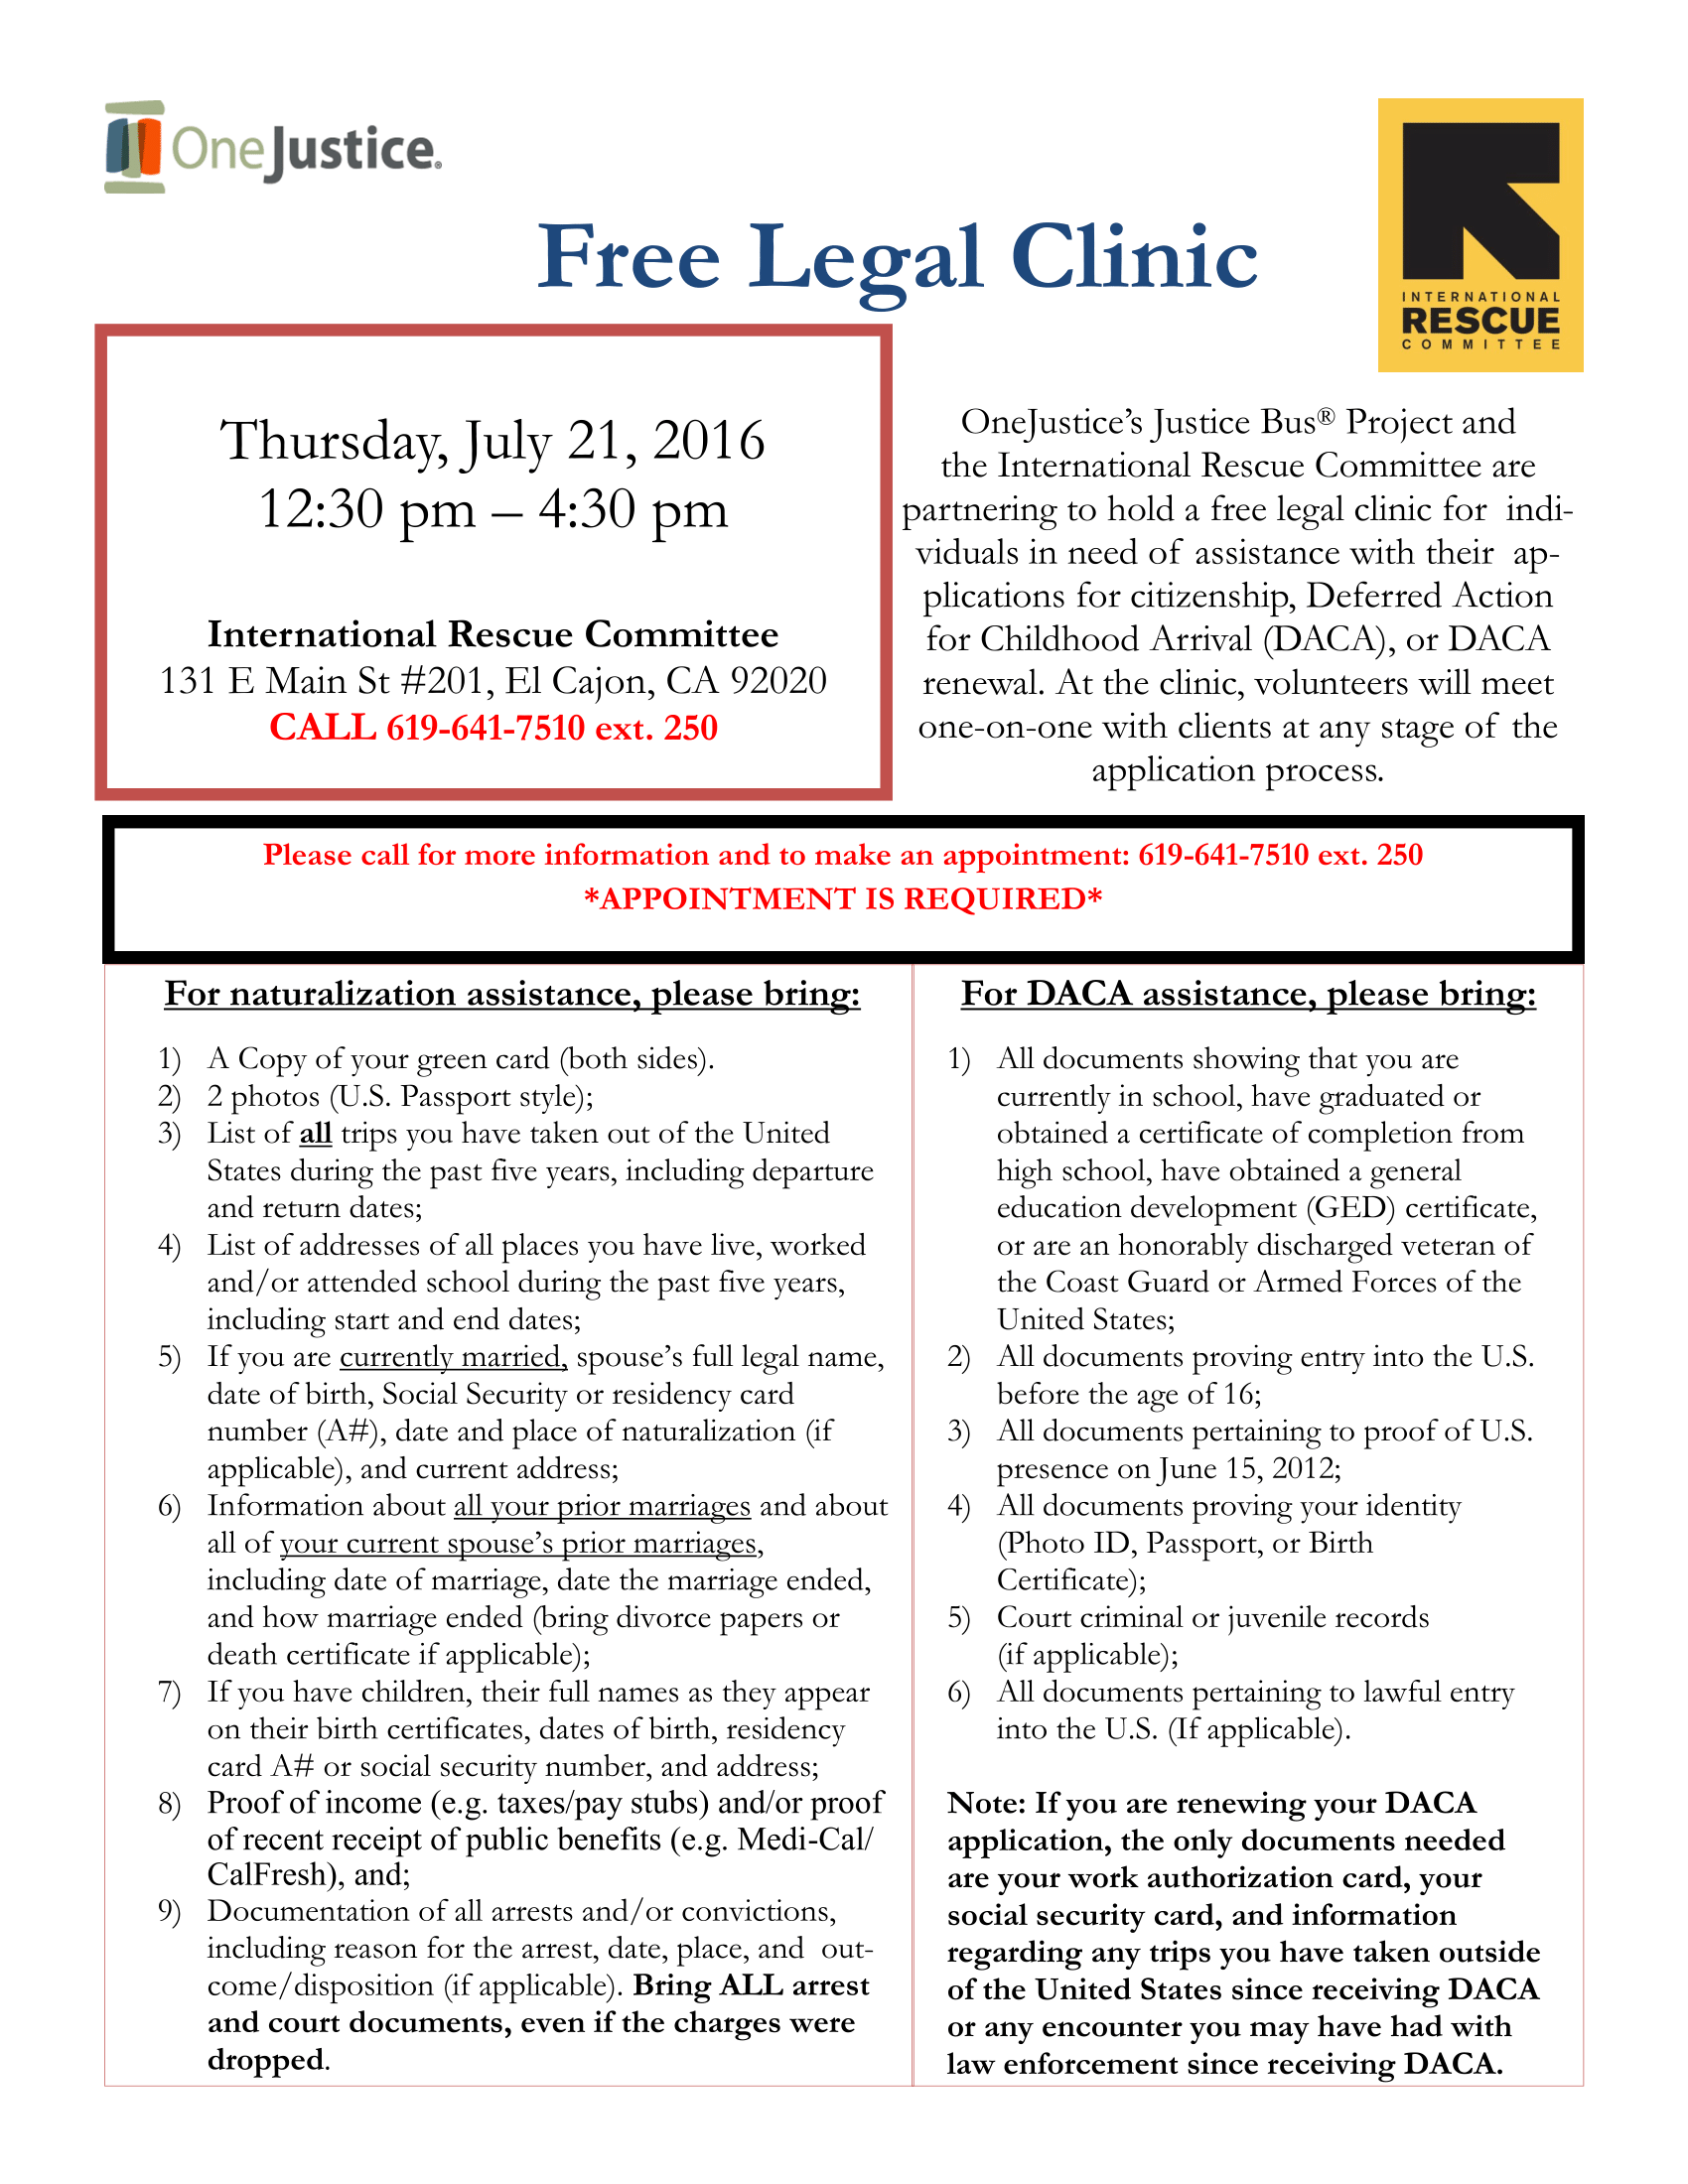 Read the blog of elder law advocacy elder law advocacy part 3 client outreach flyer english spanishel cajon july 21 1 1 reheart Image collections